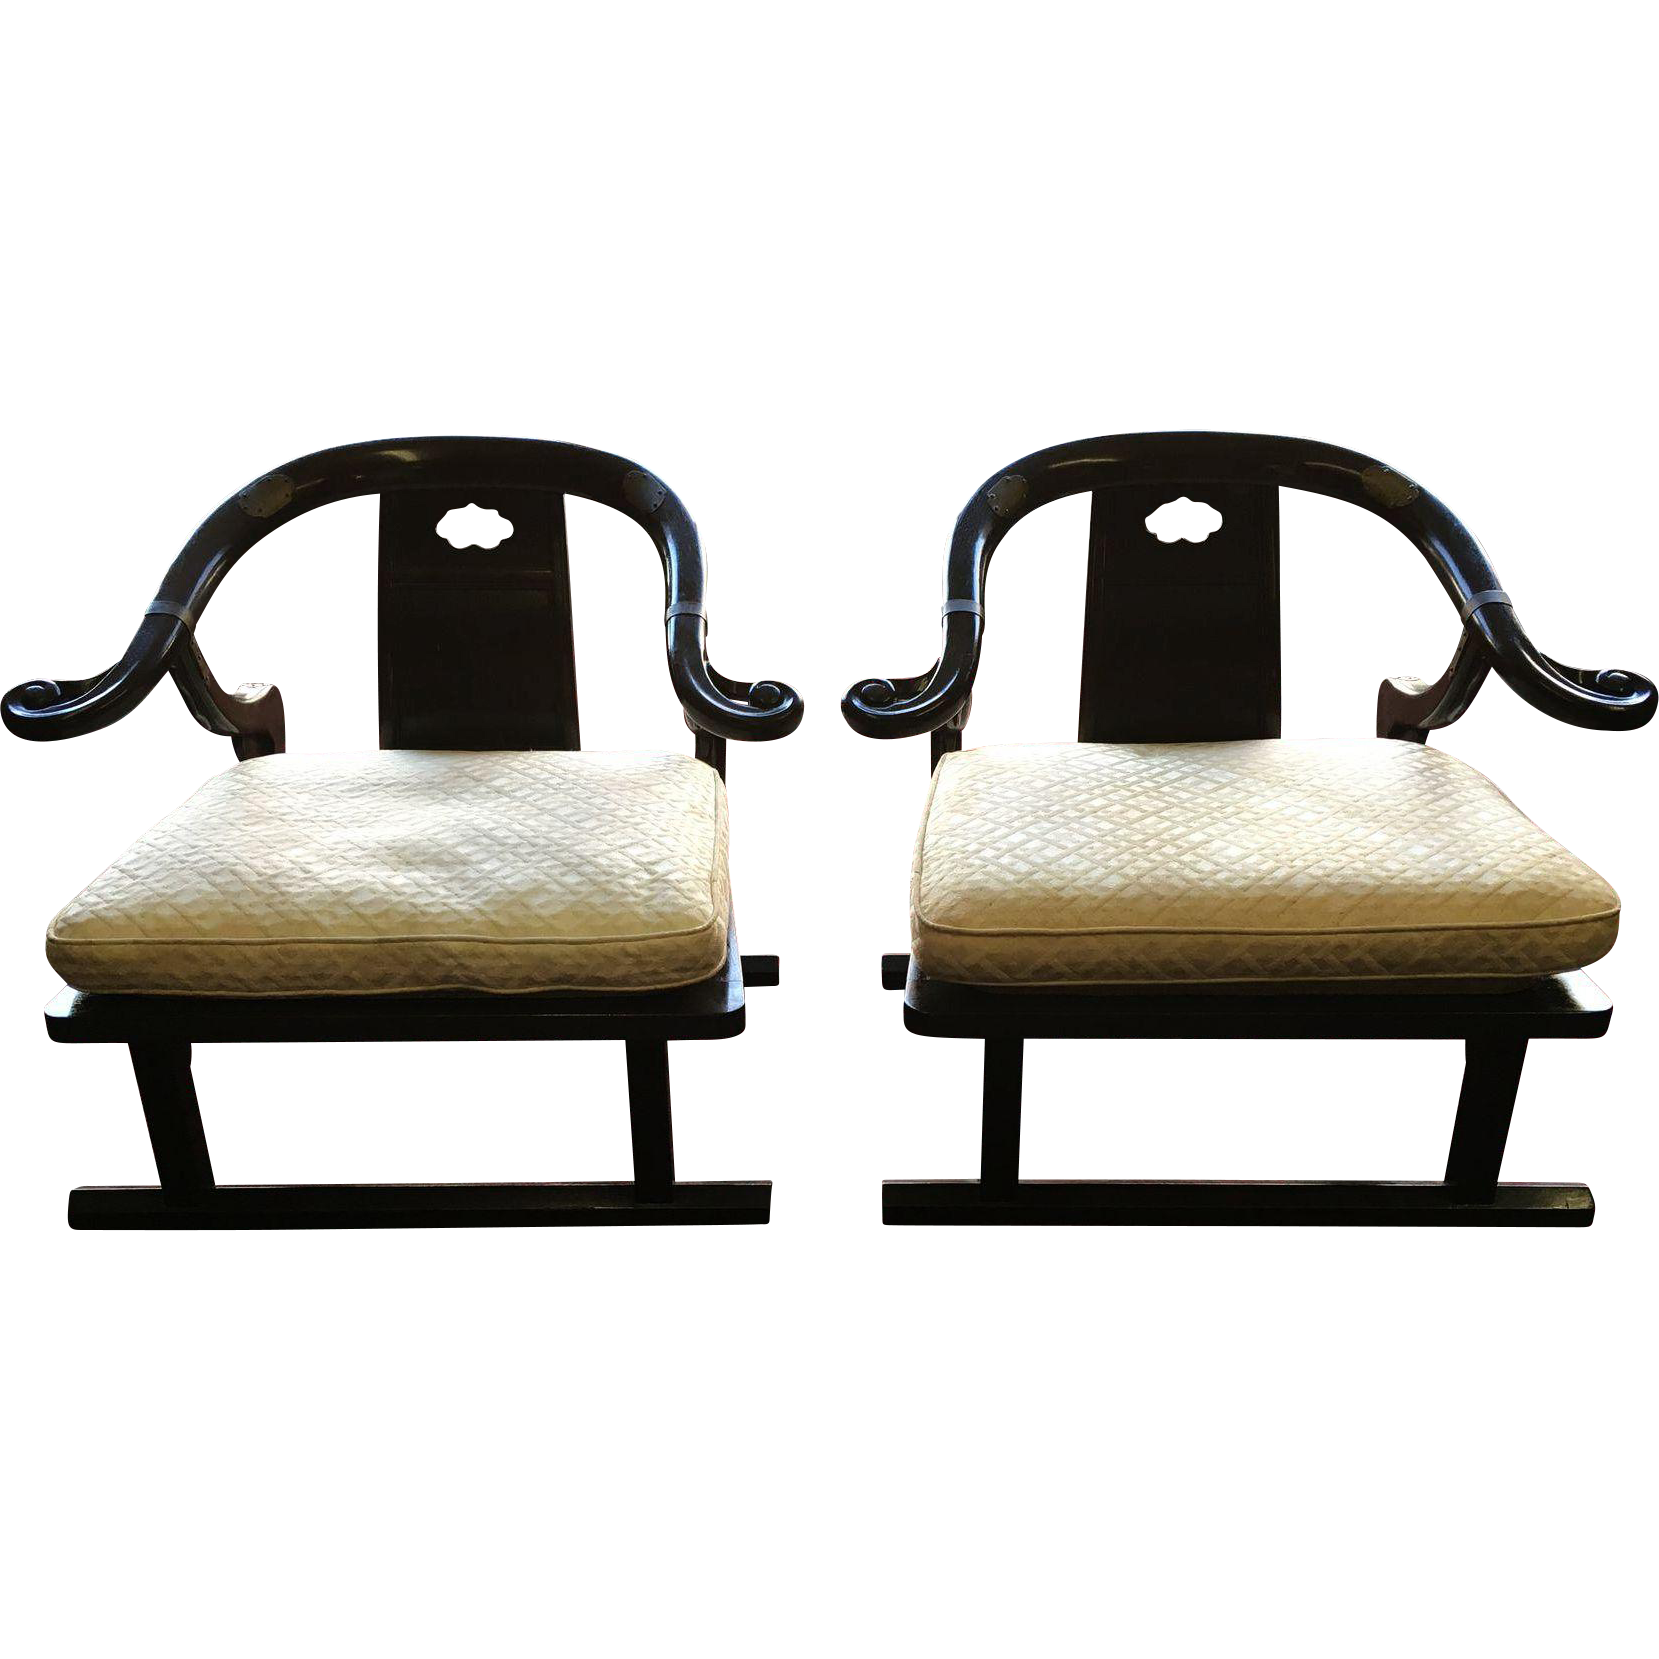 Baker Furniture Far East Collection Arm Chairs 2510 By Michael Taylor From Themoodycarpenter On